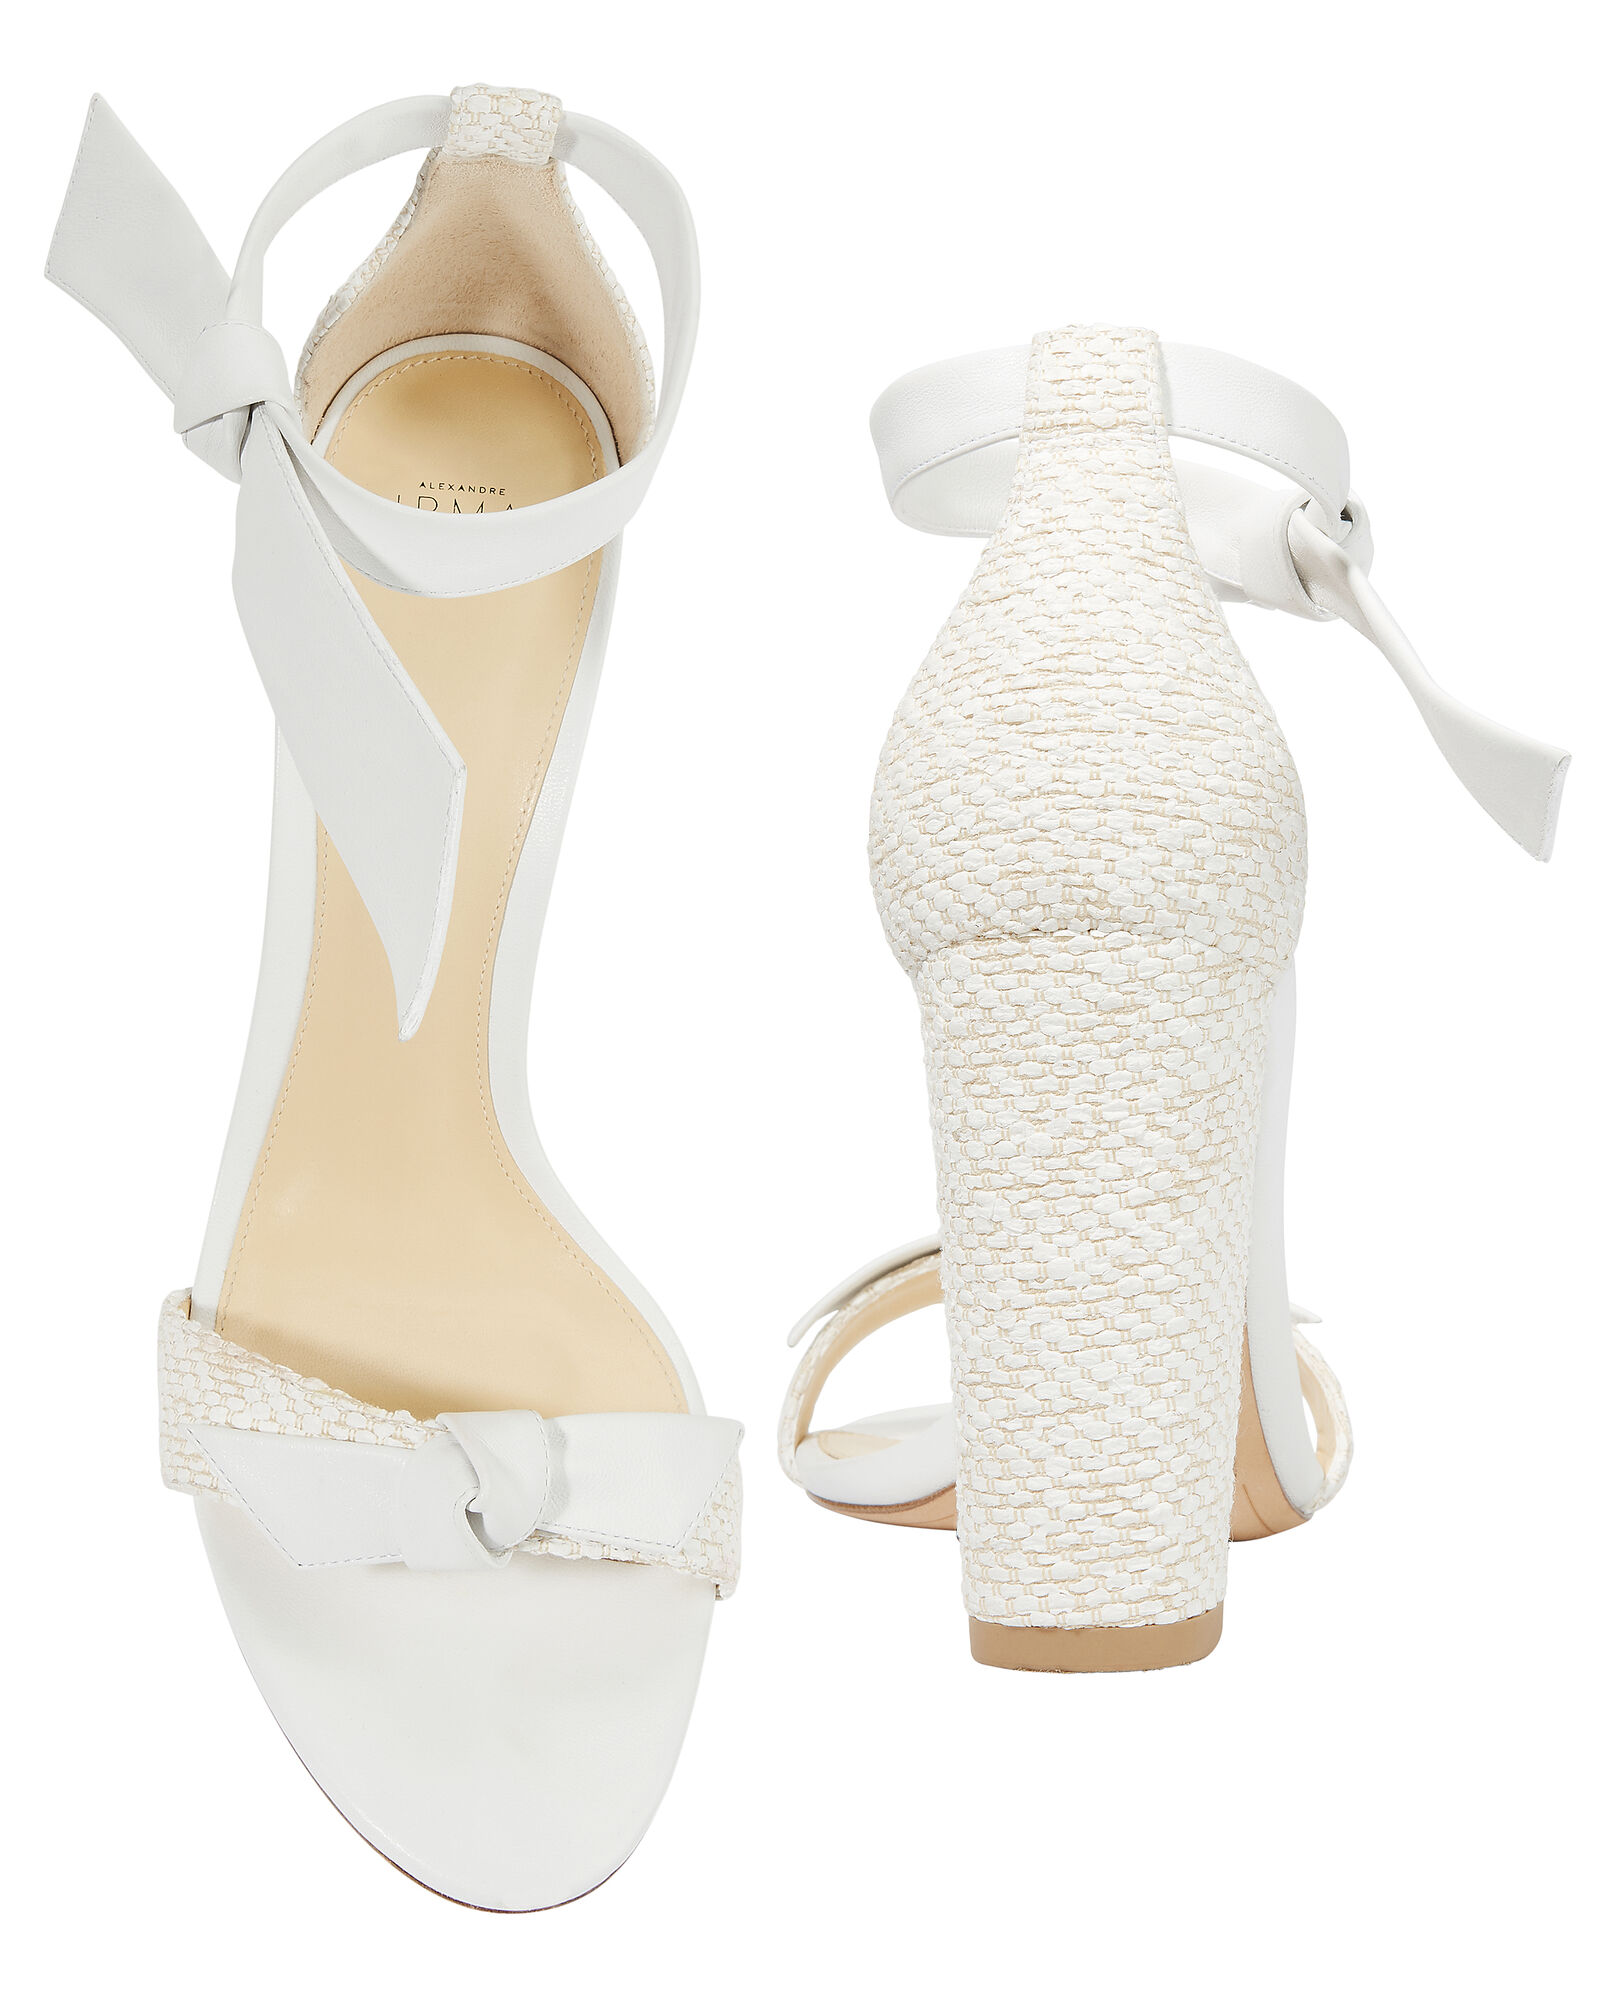 Clarita 90 Block Sandals, WHITE, hi-res